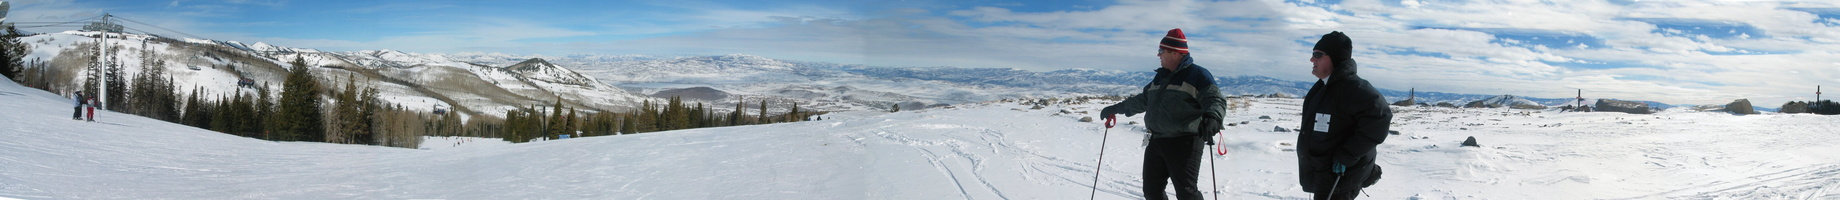 5 Park City panoramic